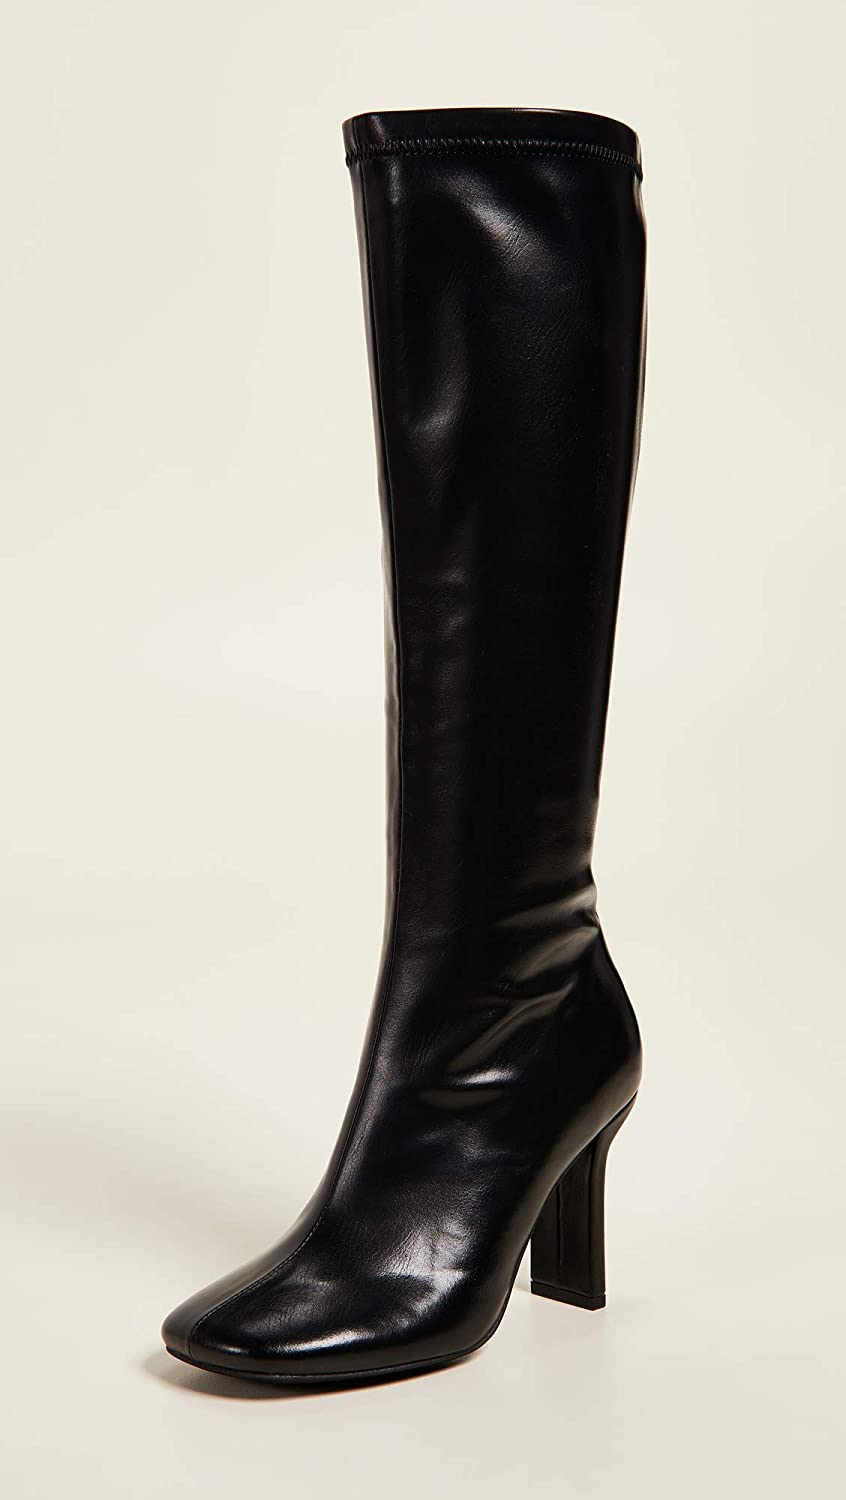 aa356587c1bc0 Amazon.com | Jeffrey Campbell Women's Obey Tall Boots | Knee-High